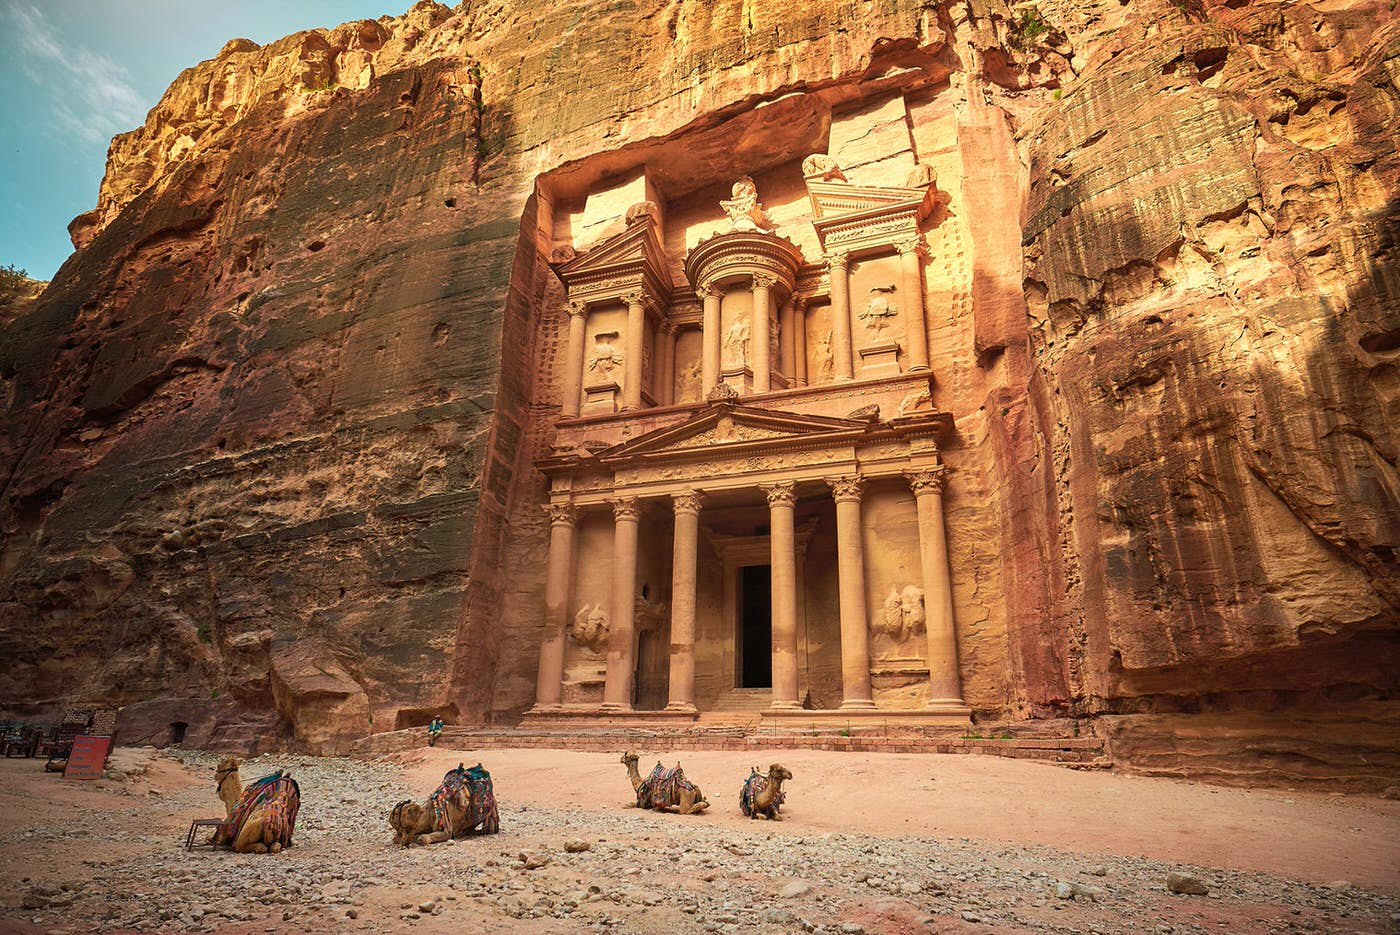 How to be a responsible traveller in Petra, Jordan